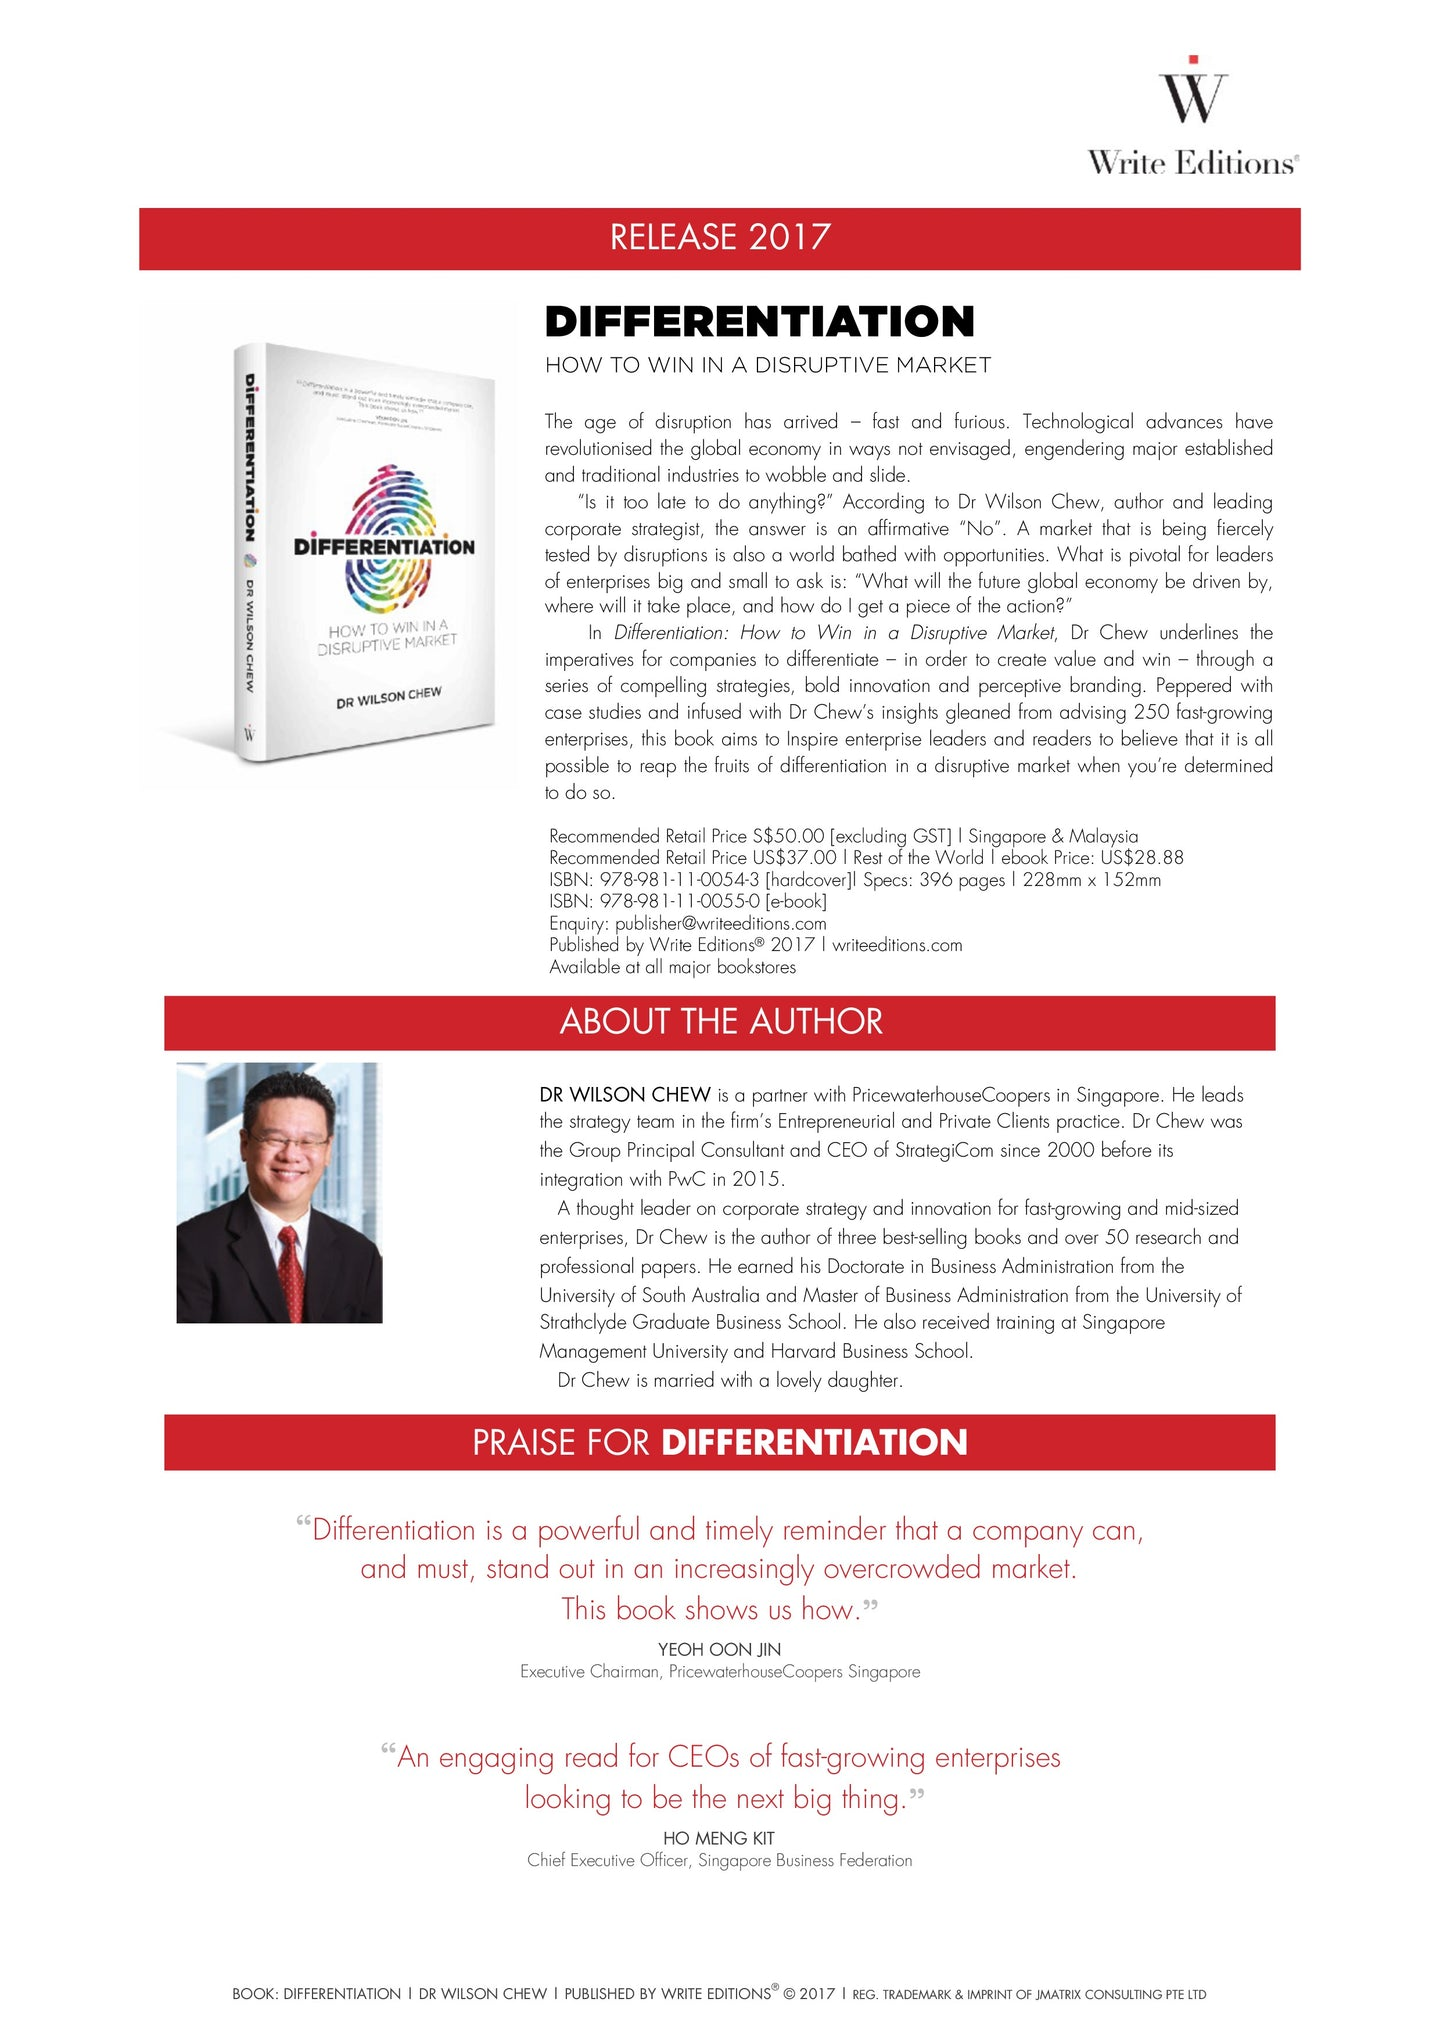 Differentiation: How To Win In A Disruptive Market